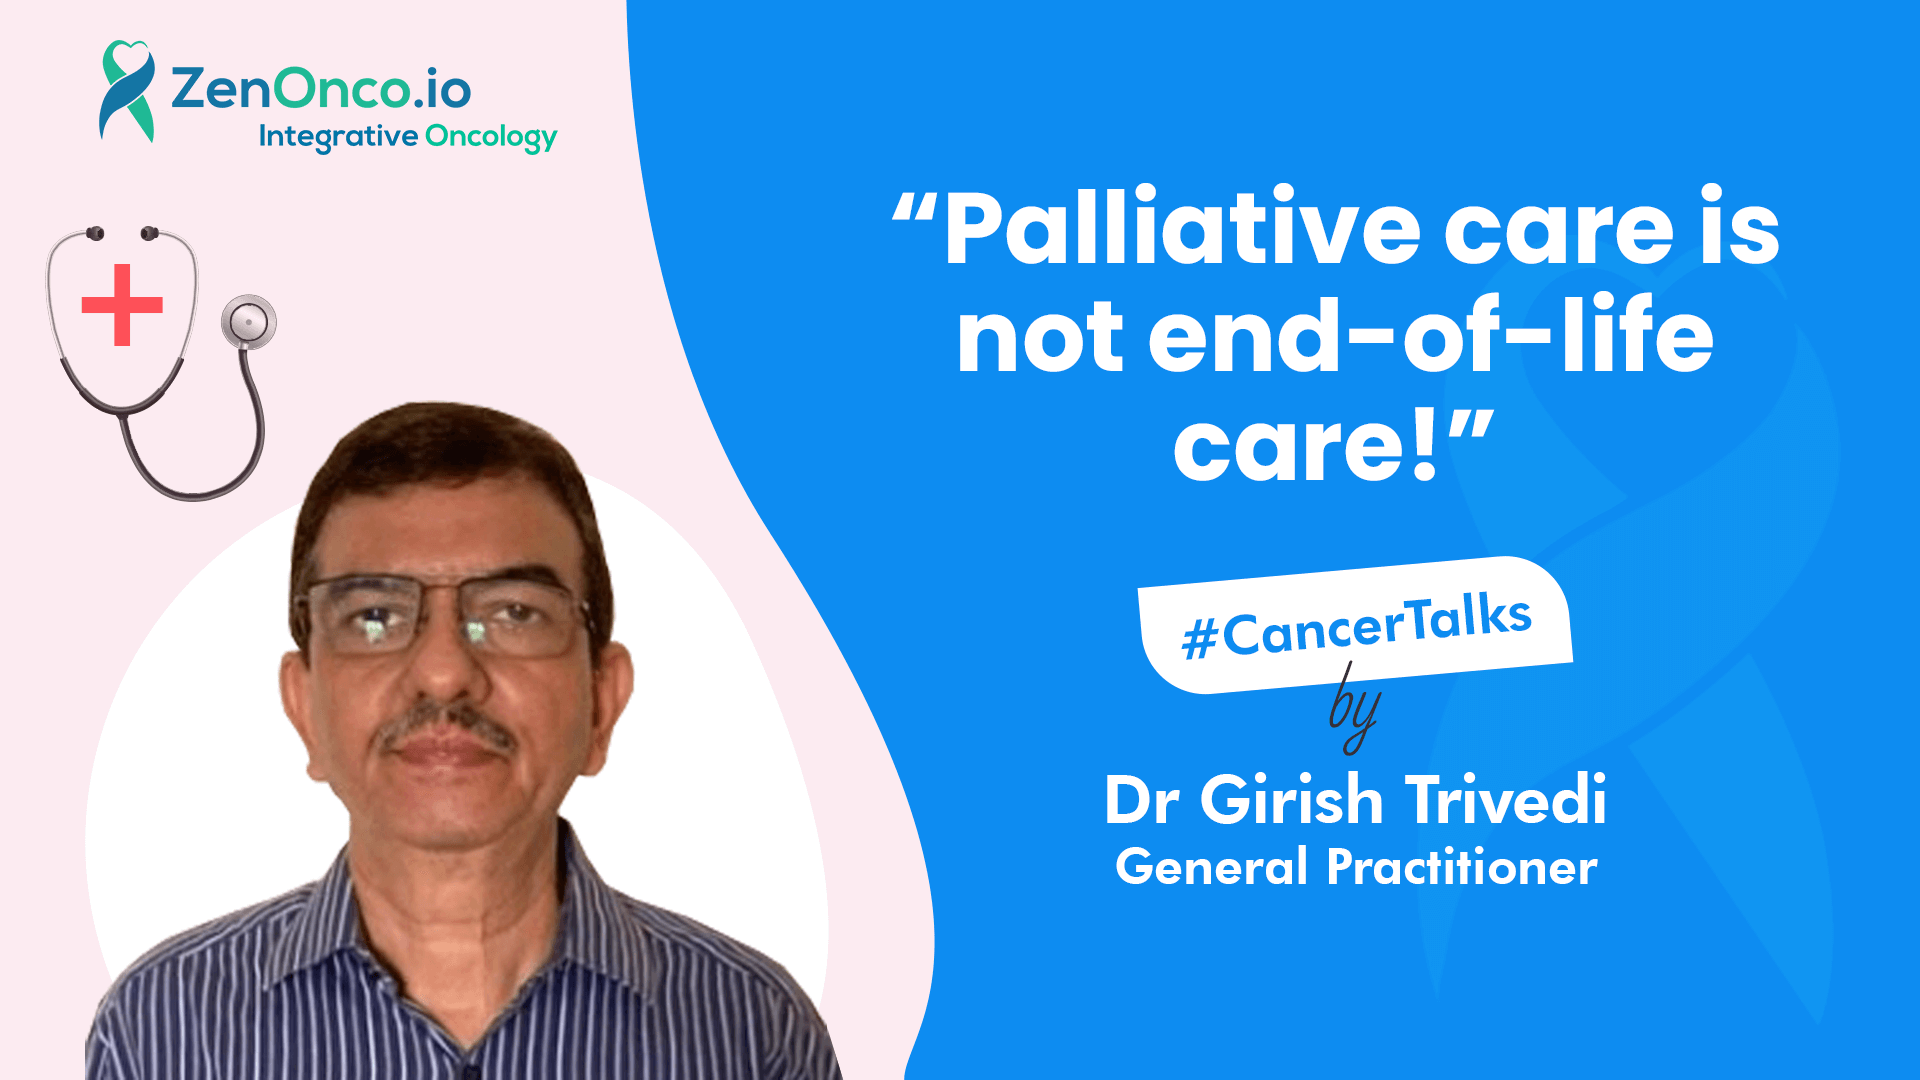 Interview with Dr Girish Trivedi (General Practitioner): Hospice and Palliative Care